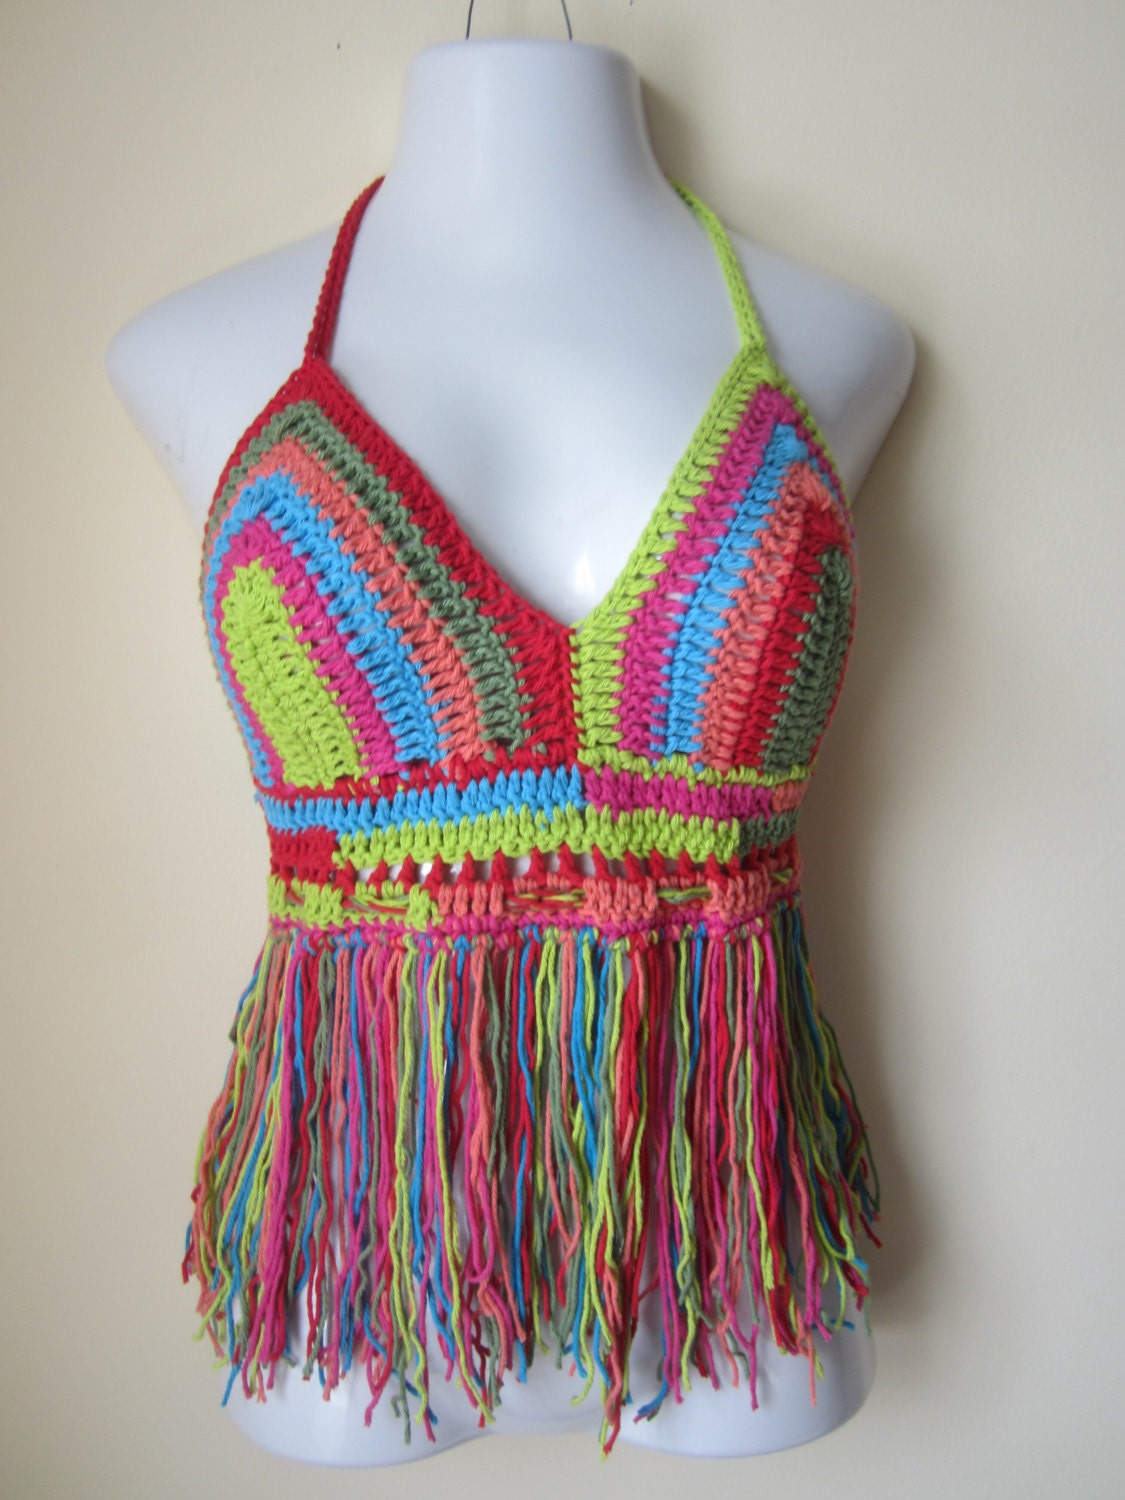 CROCHET HALTER TOP Burning man festival halter by Elegantcrochets